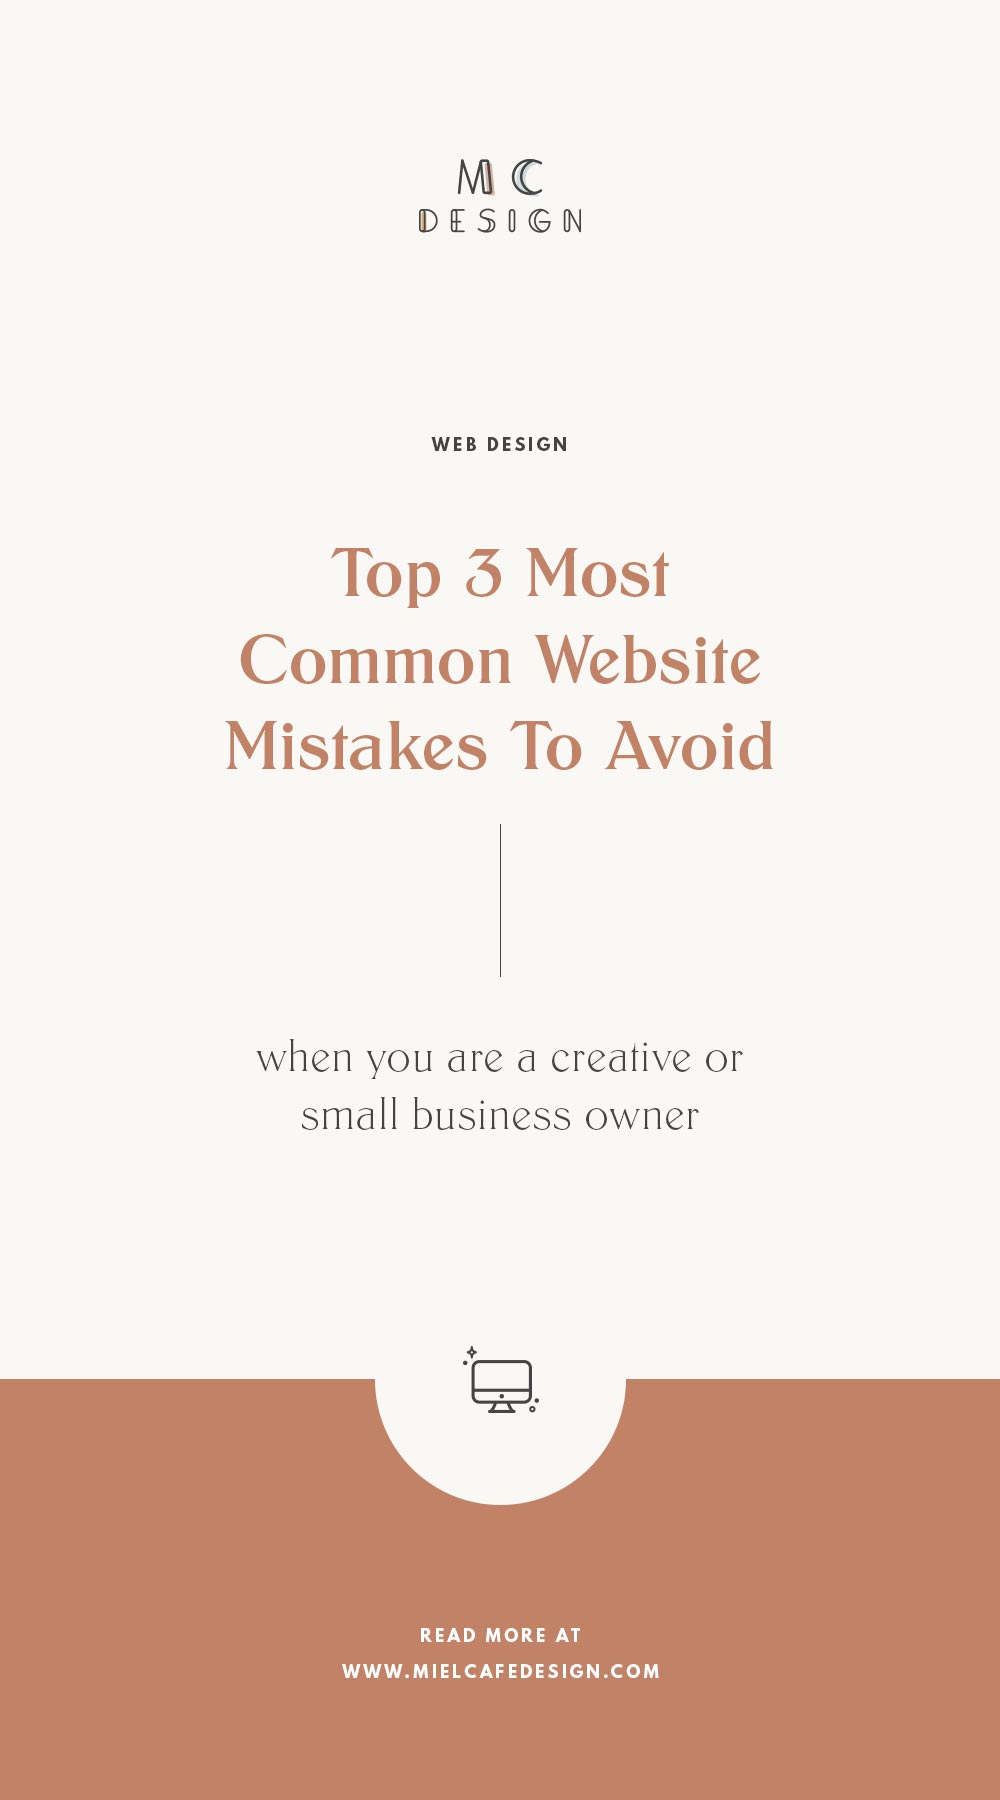 Top 3 most common website mistakes to avoid if you're a creative or small business owner